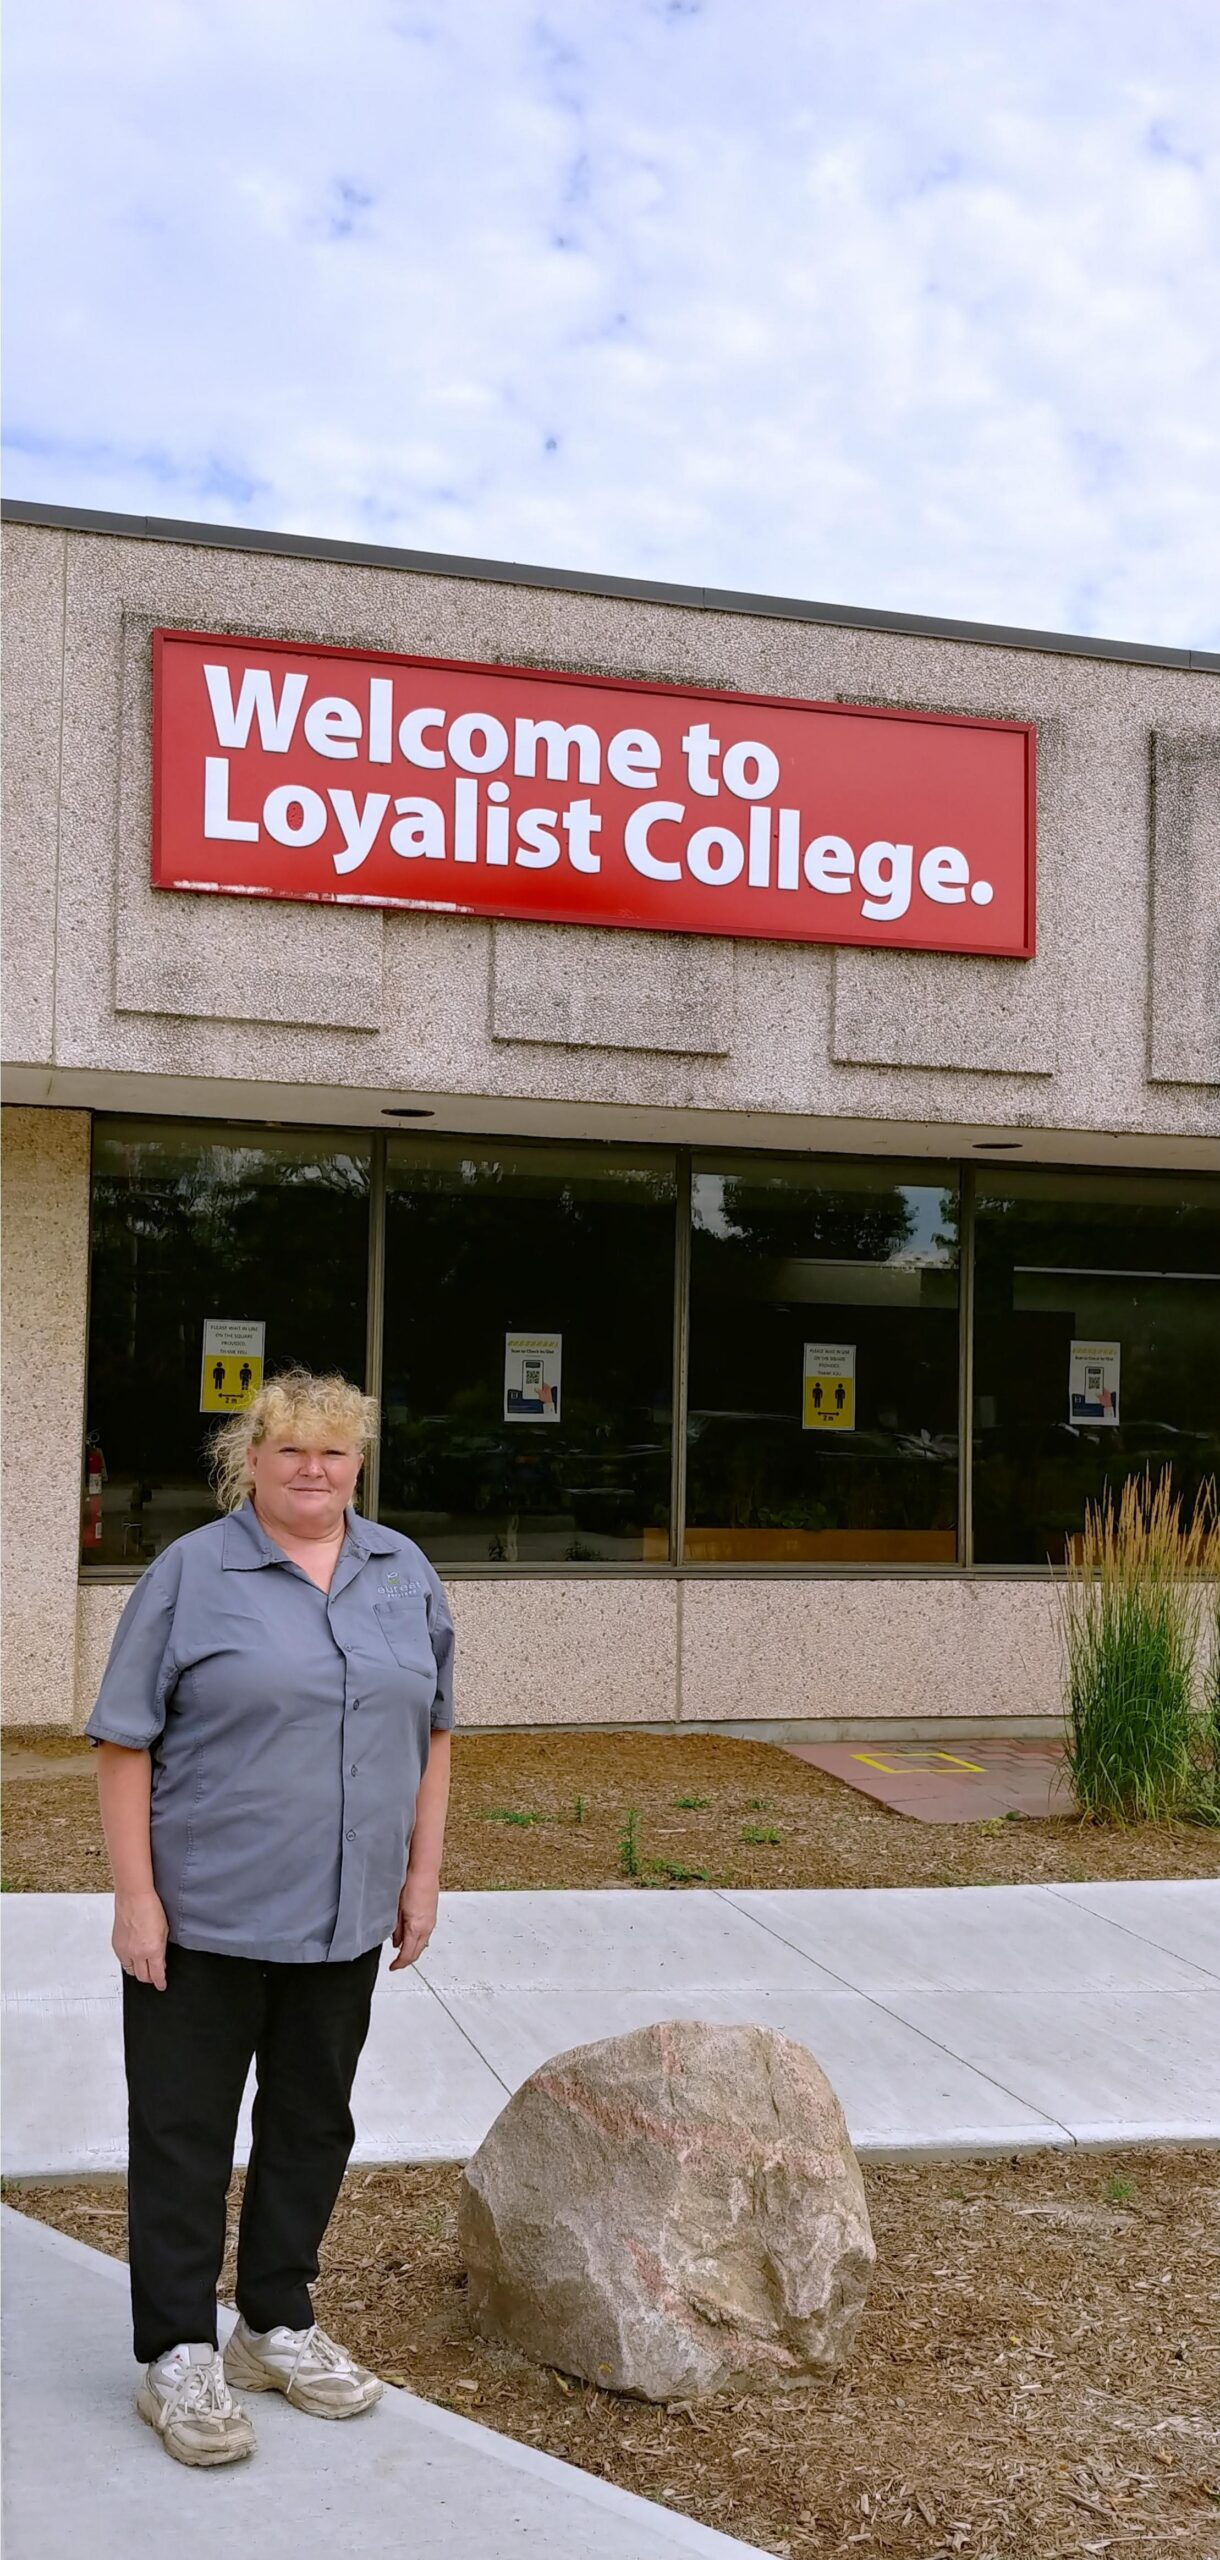 Janitors Working for Compass Canada at Loyalist College Win Sick Days, a Wage Boost, and a Pension in Latest Round of Negotiations